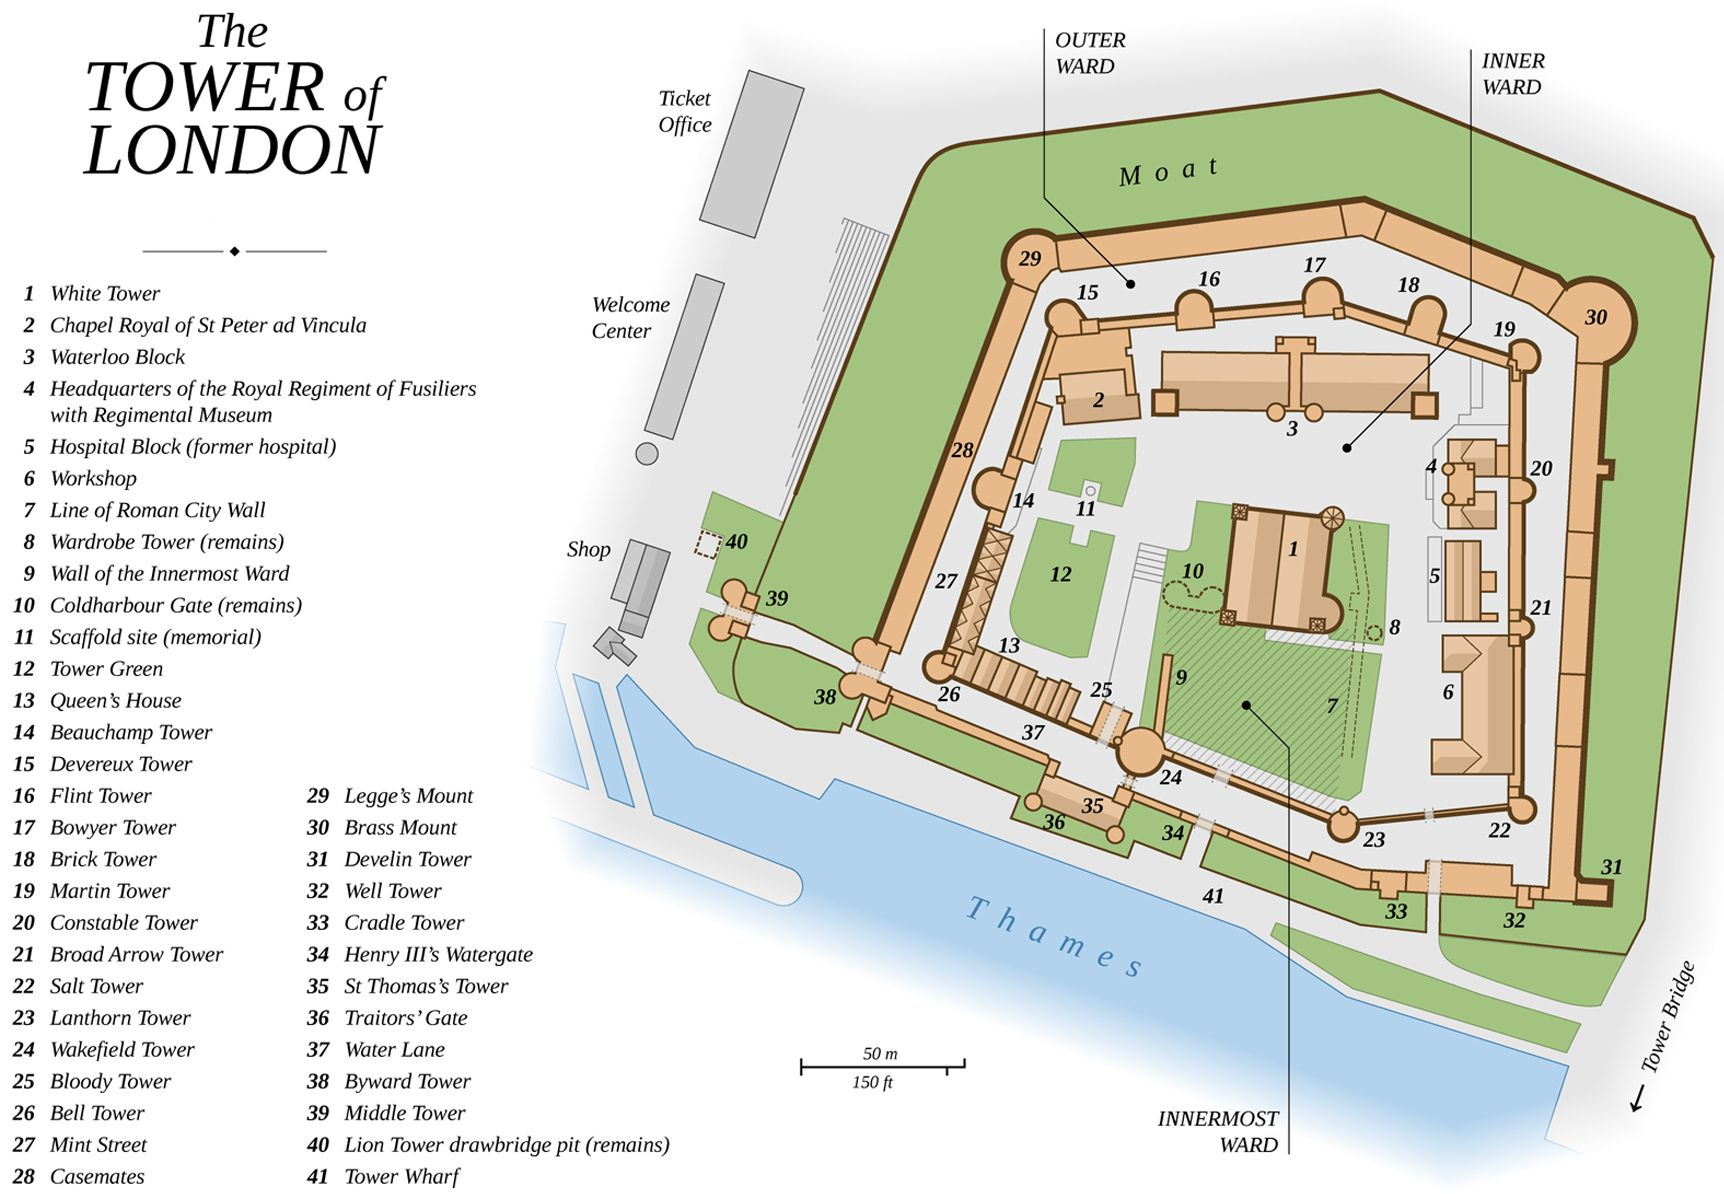 The Tower of London's layout